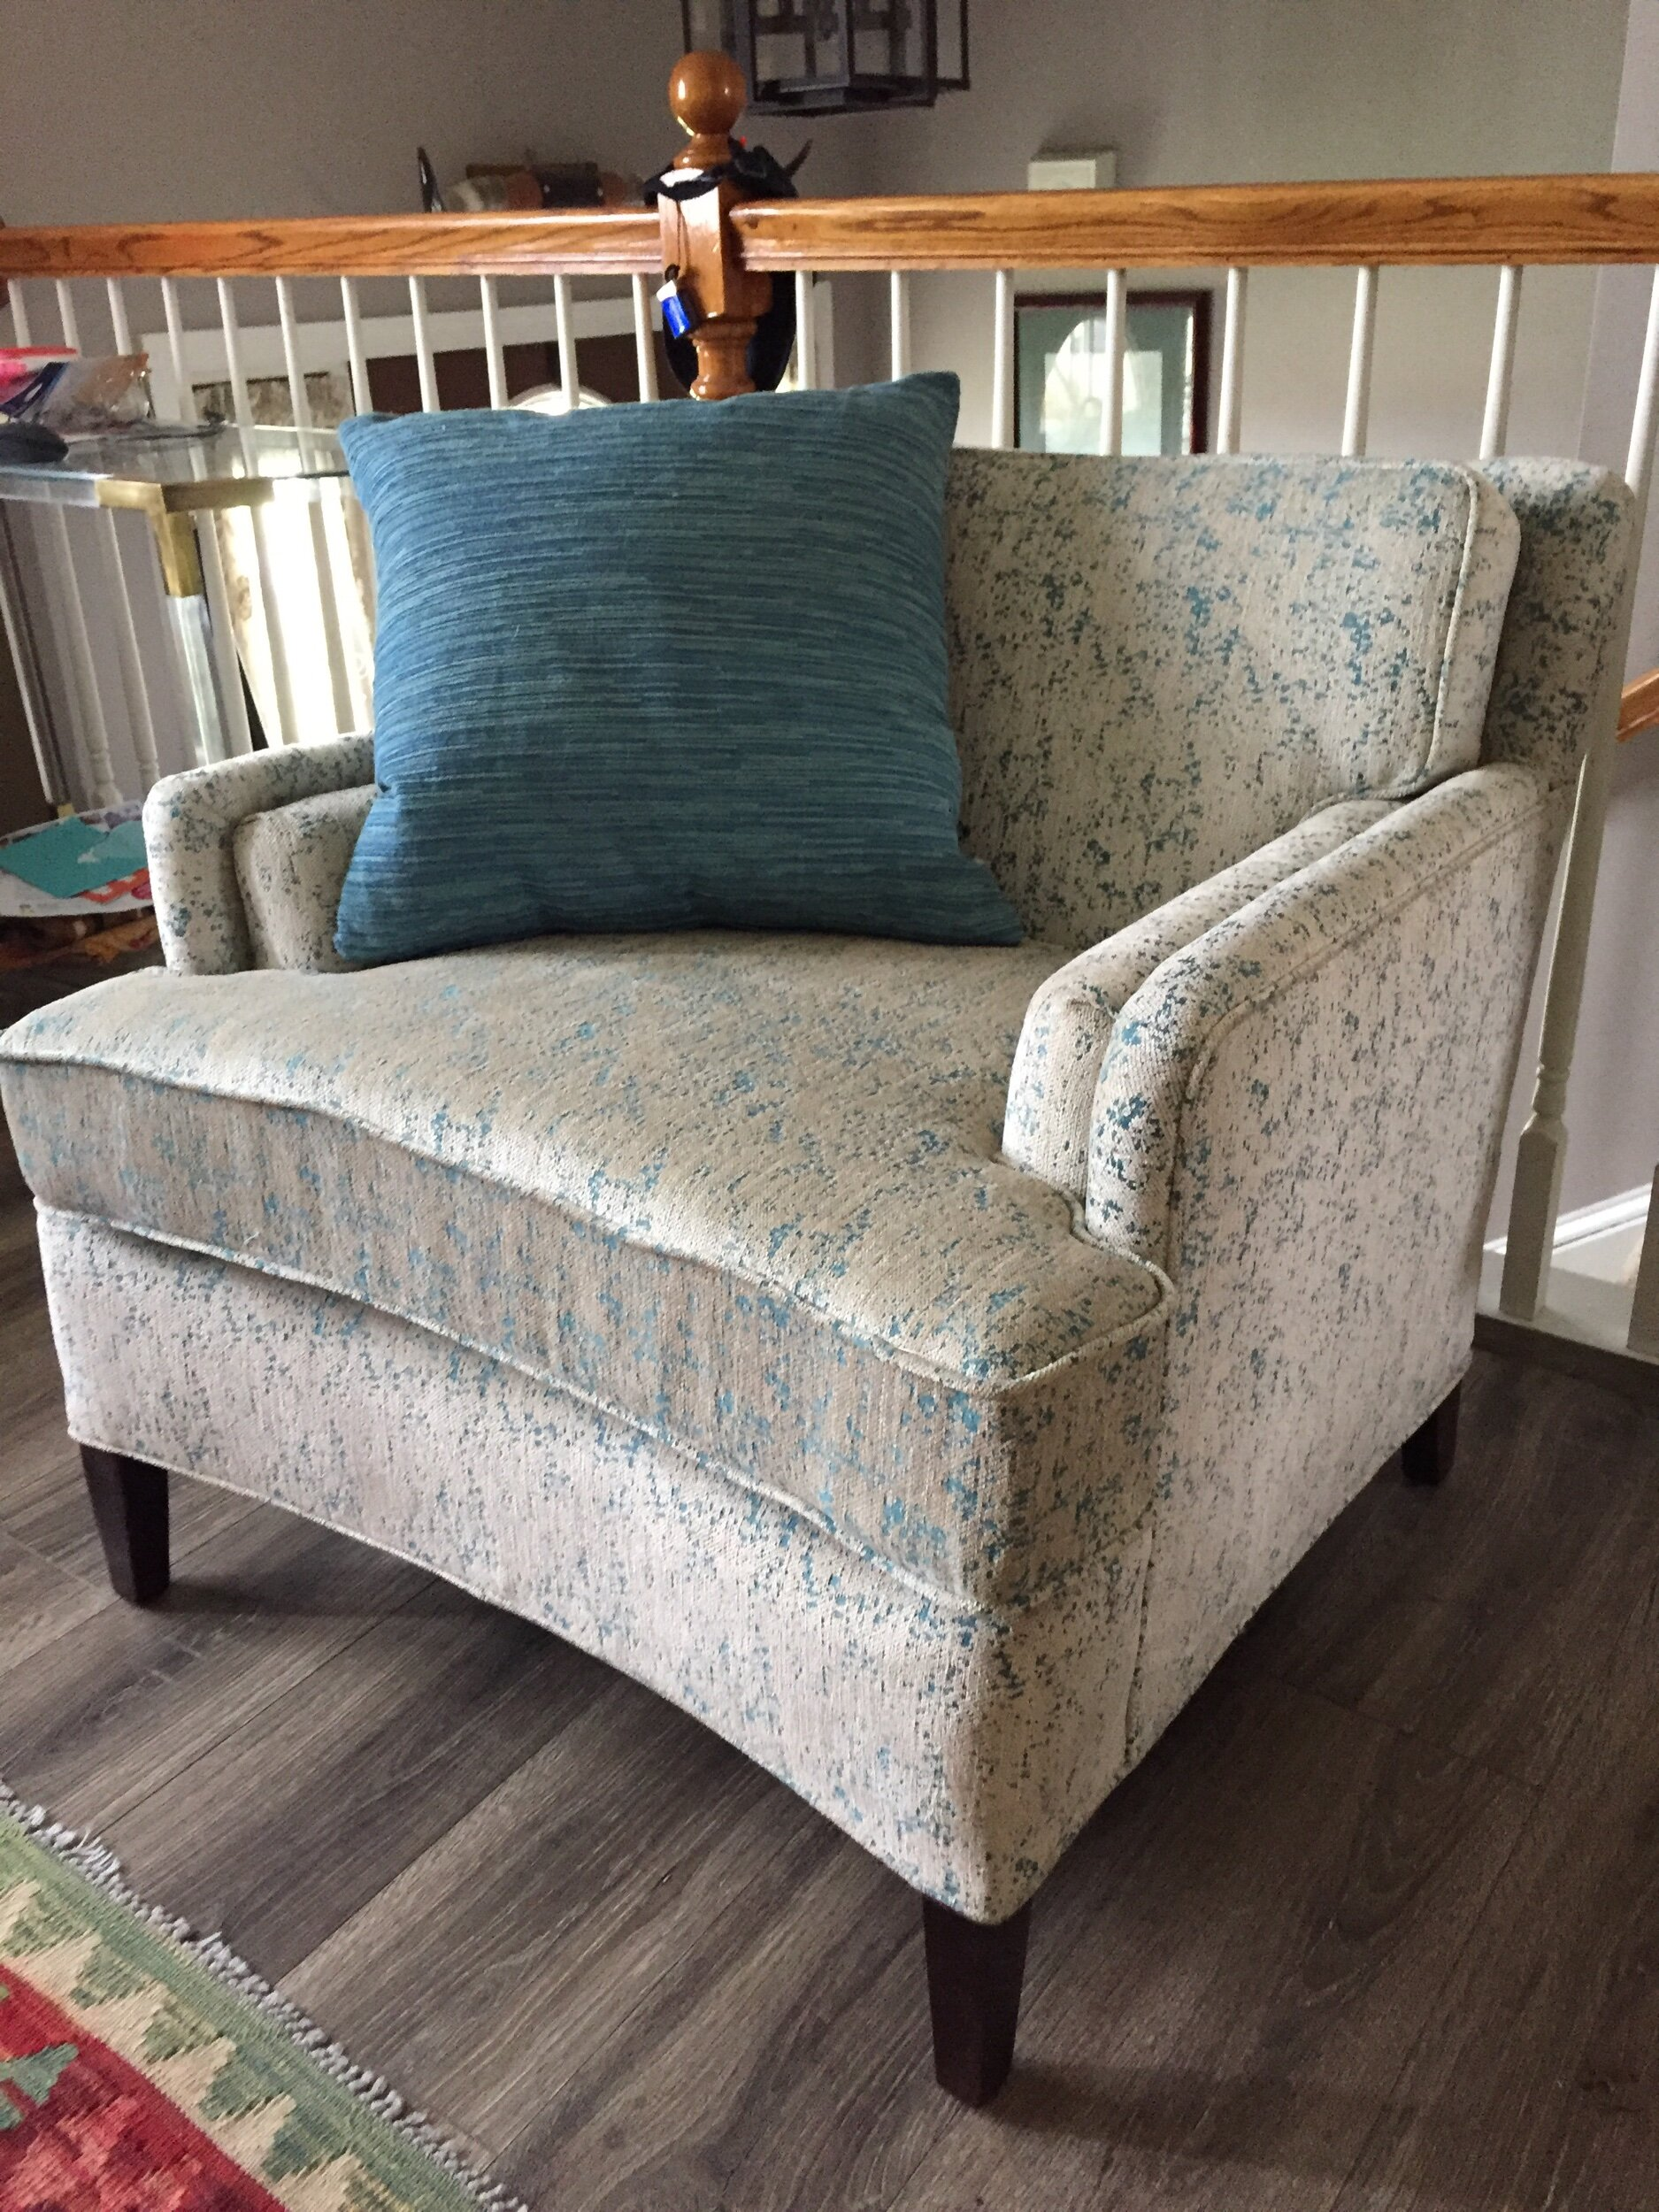 Rebuilt with new foam, new seat cushion and new fabulous upholstery! Mid century gone modern. Very much in love wity my latest restoration!